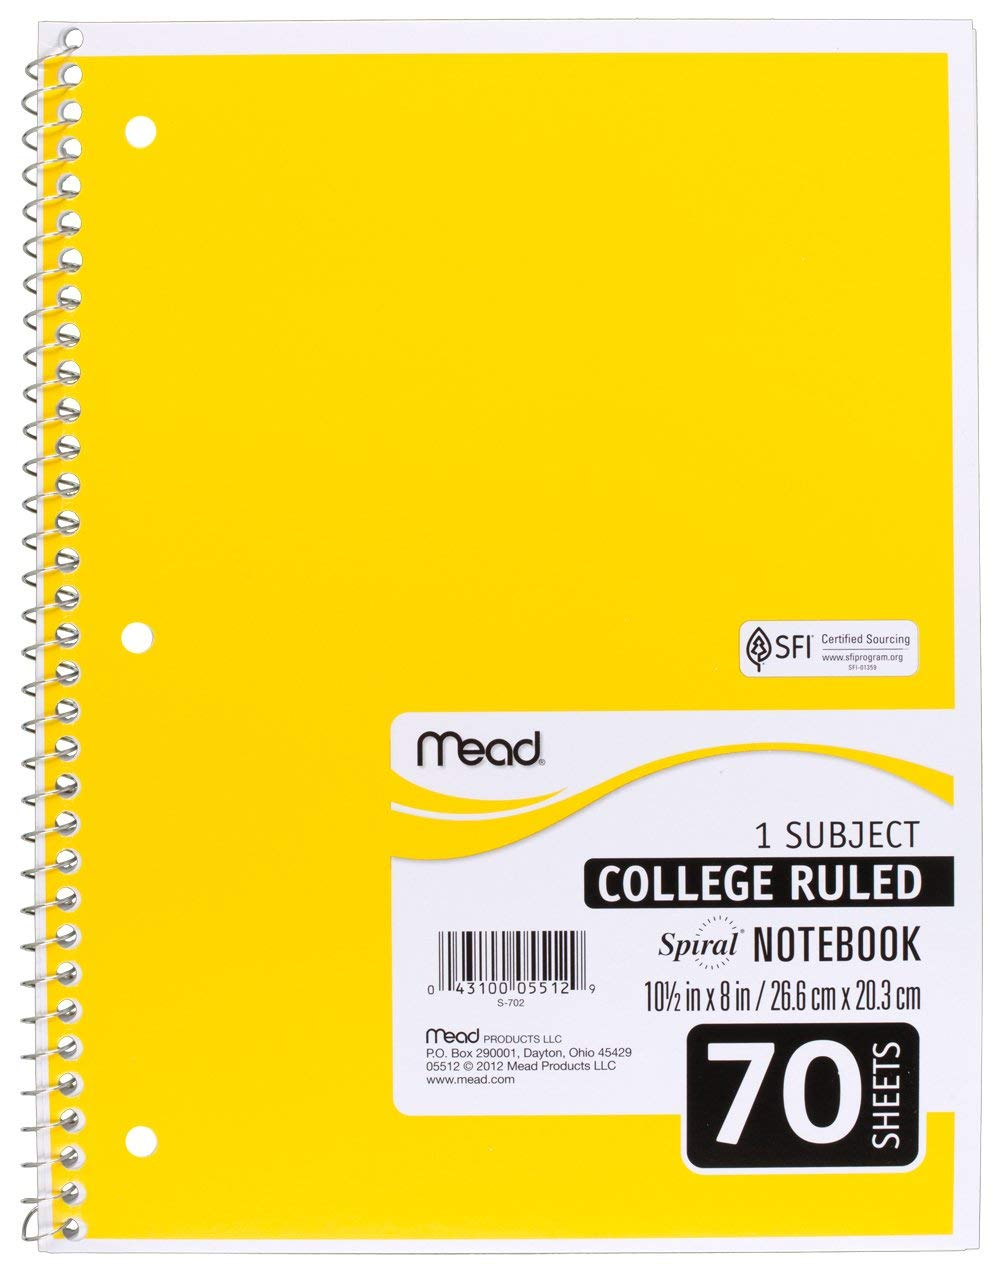 Mead SLTYGJHJ Spiral Notebooks, 1 Subject, College Ruled Paper, 70 Sheets, 10-1/2'' x 7-1/2'', Assorted Colors, 6 Pack (73065) 36 Pack by Mead (Image #7)